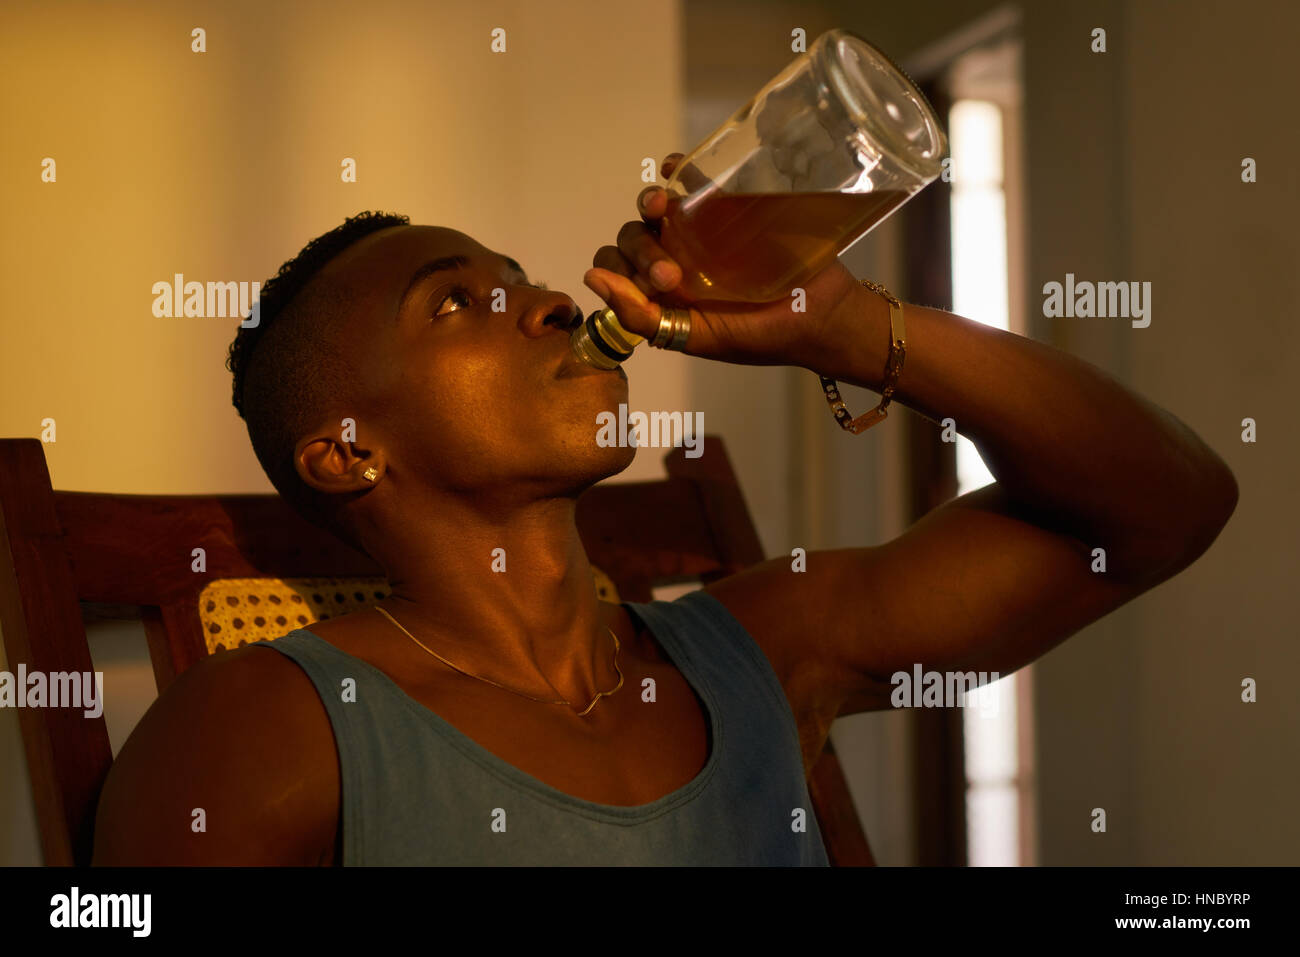 Social issues, substance abuse with alcoholic young black man drinking alchool from liquor bottle at home. - Stock Image